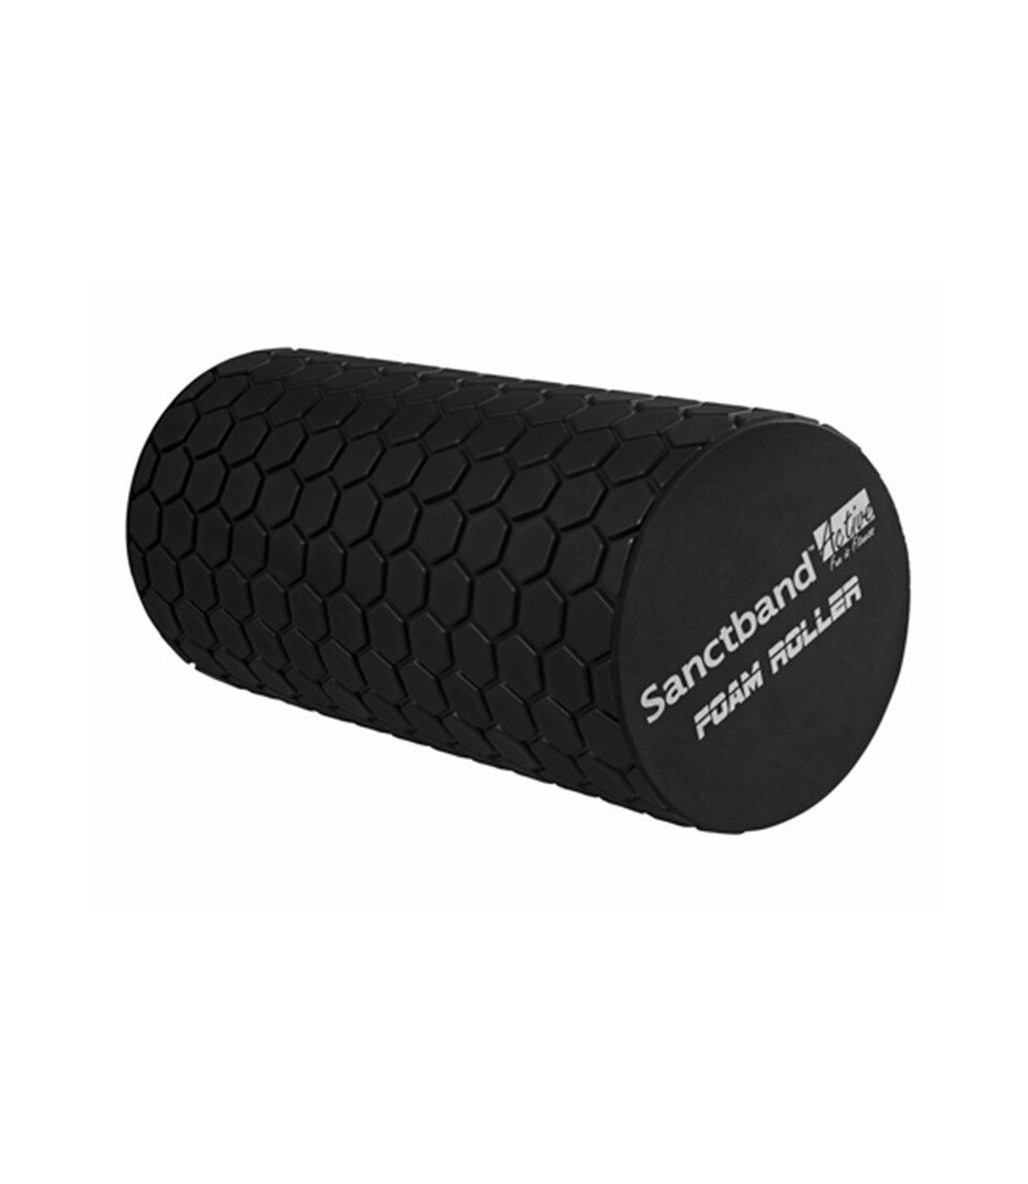 Sanctband Active Foam Roller